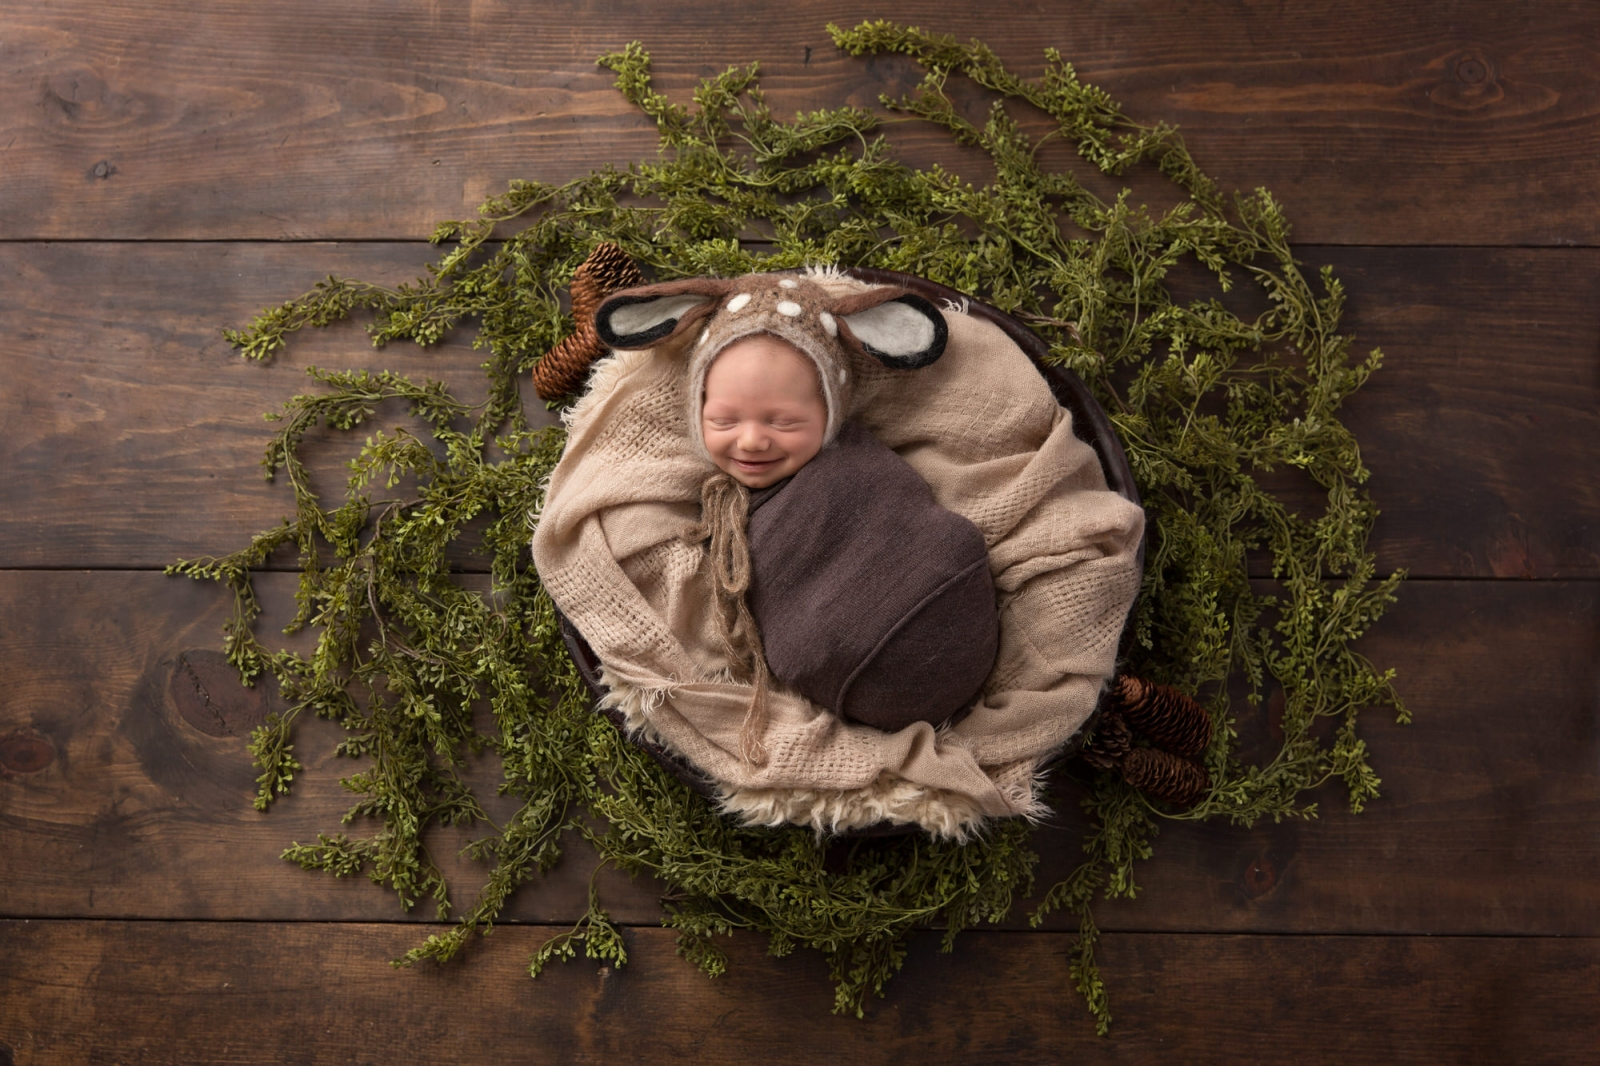 Newborn baby boy laying in a bowl with greenery around him. Photo by Pueblo-Colorado Springs photographer K.D. Elise Photography.